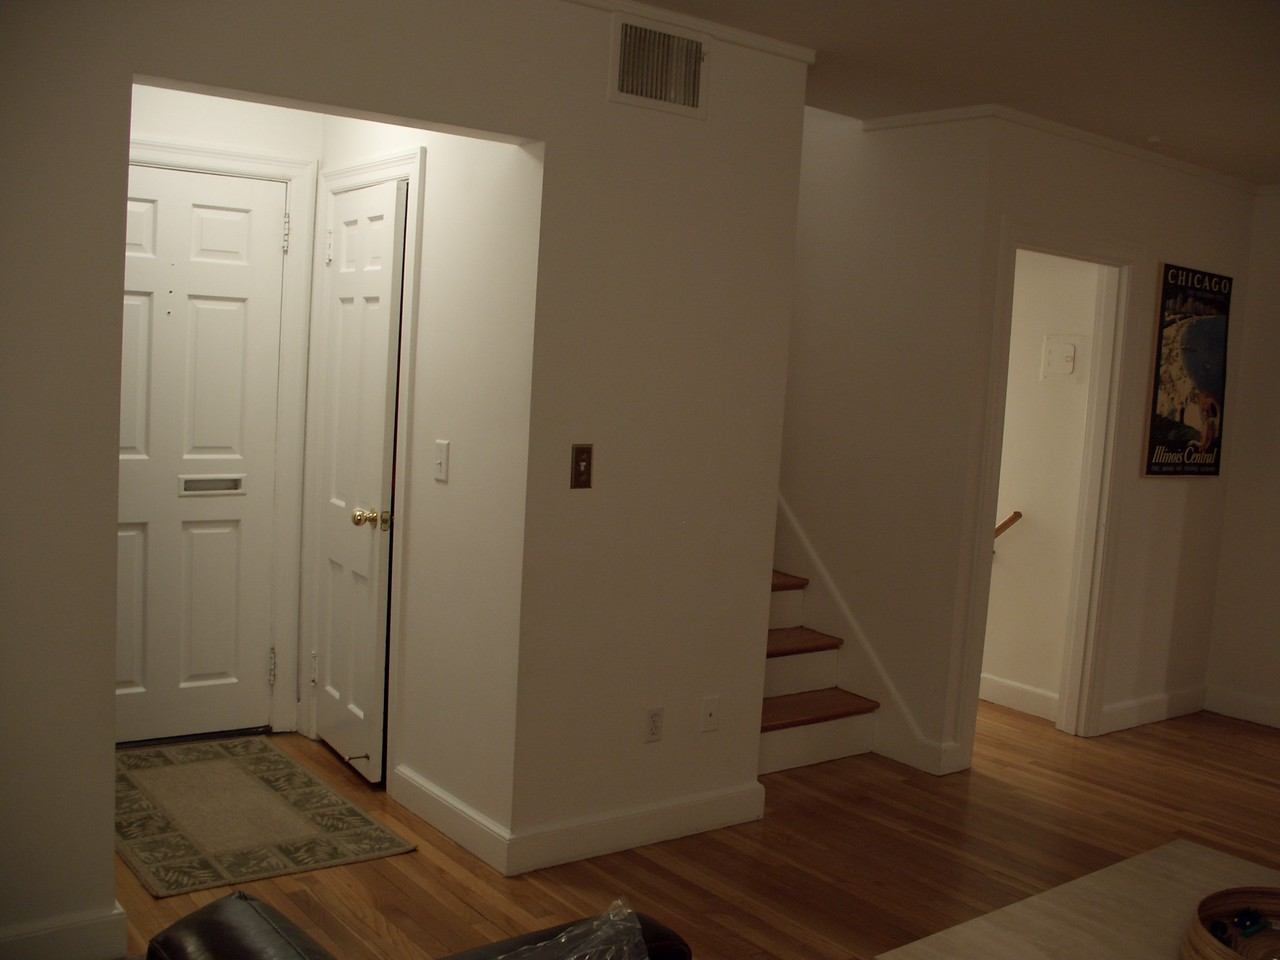 Notice how, on the other side of this useful wall space, there is a closet.